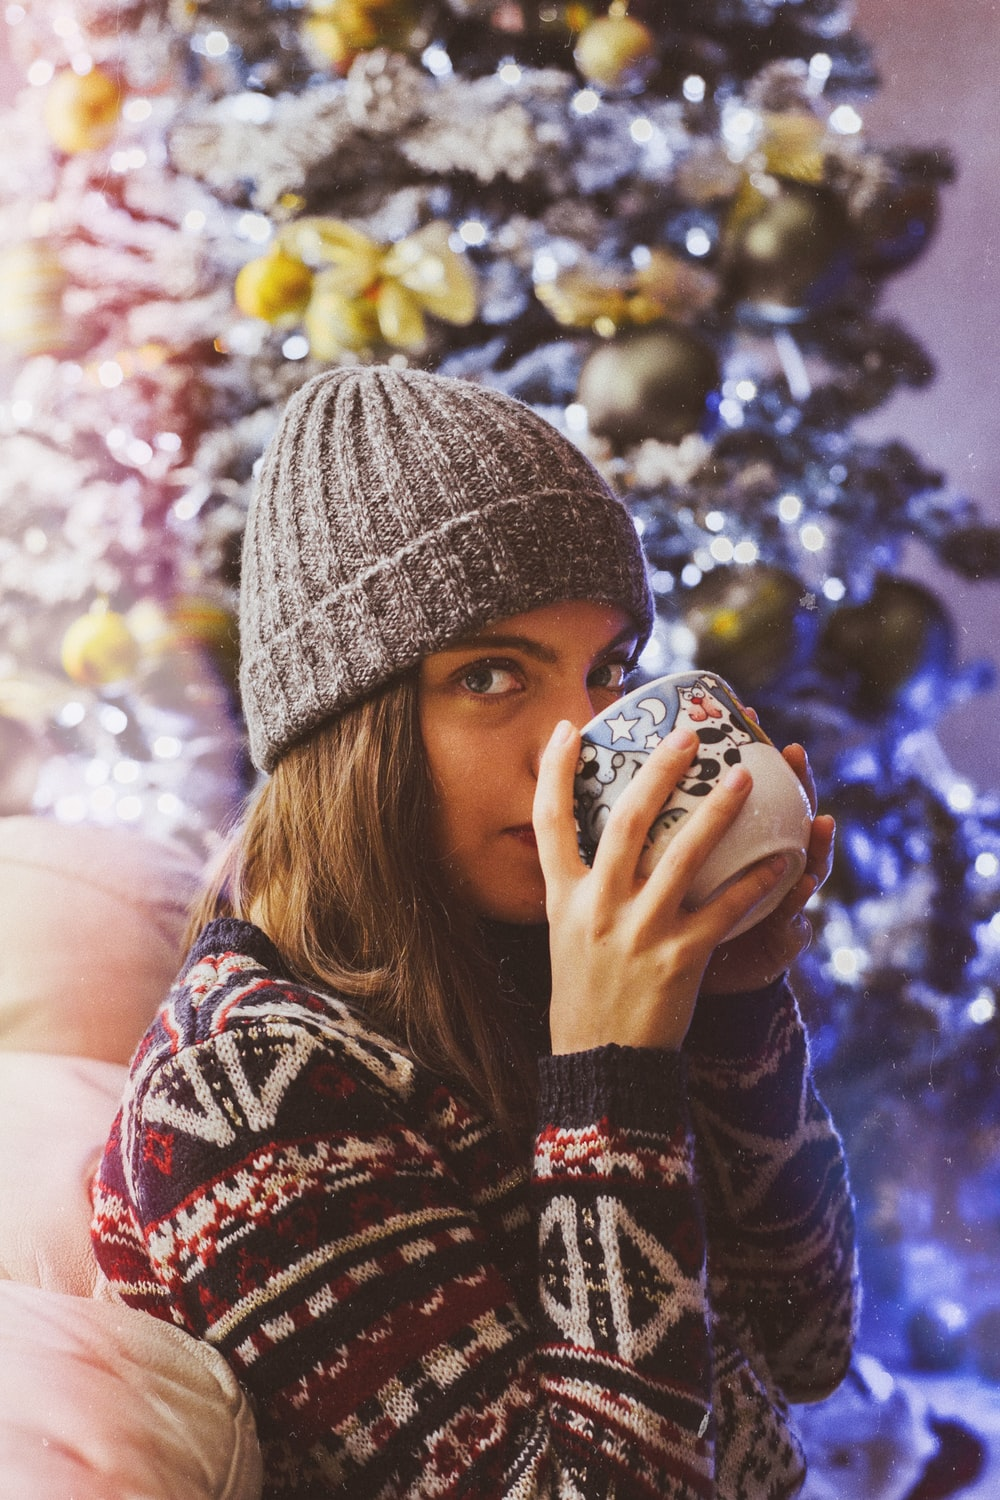 woman drinking from cup near Christmas tree